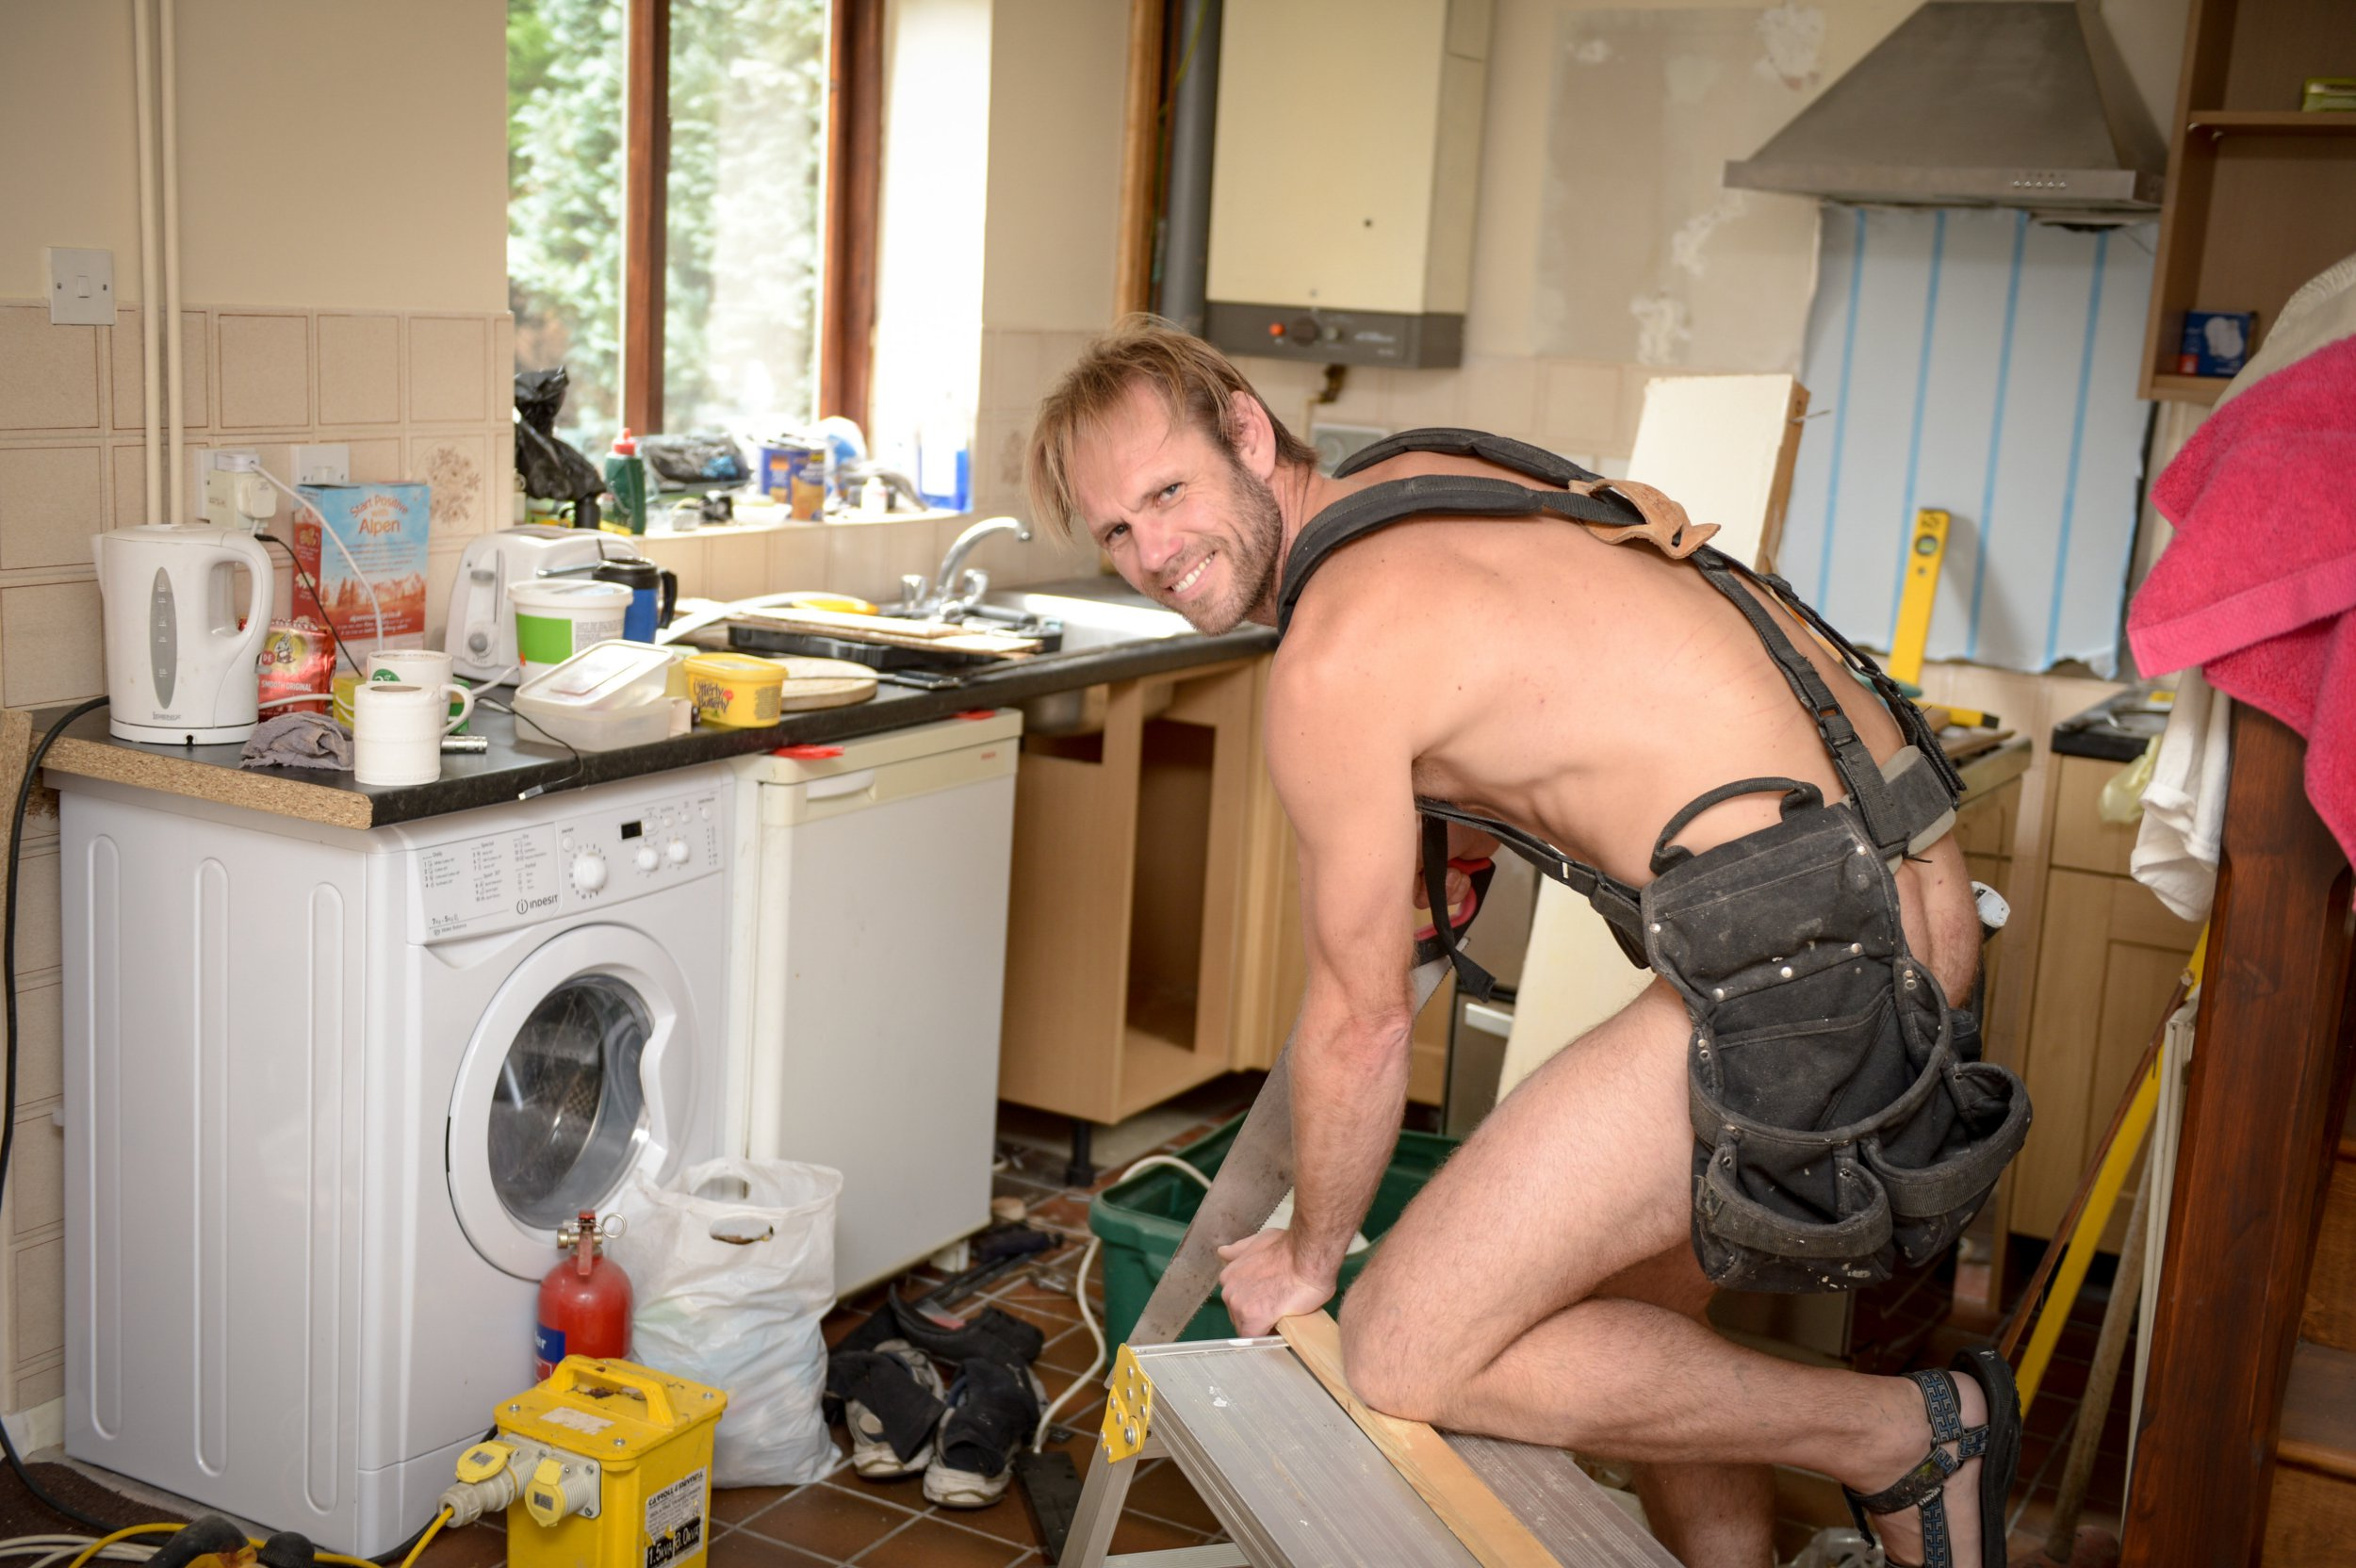 "FILE PIC - Naturist Rob Jenner renovating his house See National News story NNnaked.A naturist, dubbed the 'Naked Carpenter' for doing up his house in the buff, exposed himself while working as a delivery driver - and walked through a shopping centre in clear trousers.Robert Jenner, an ex-soldier and self-styled naturist, insisted his daring actions have never left anyone ""alarmed or shocked"" - despite walking past a playground with his manhood in clear view.But the 43-year-old was convicted of ten counts of indecent exposure at Canterbury Crown Court.But the court decided he should be punished for 'going commando' and was found guilty of ten offences, after an 11th charge was dropped."